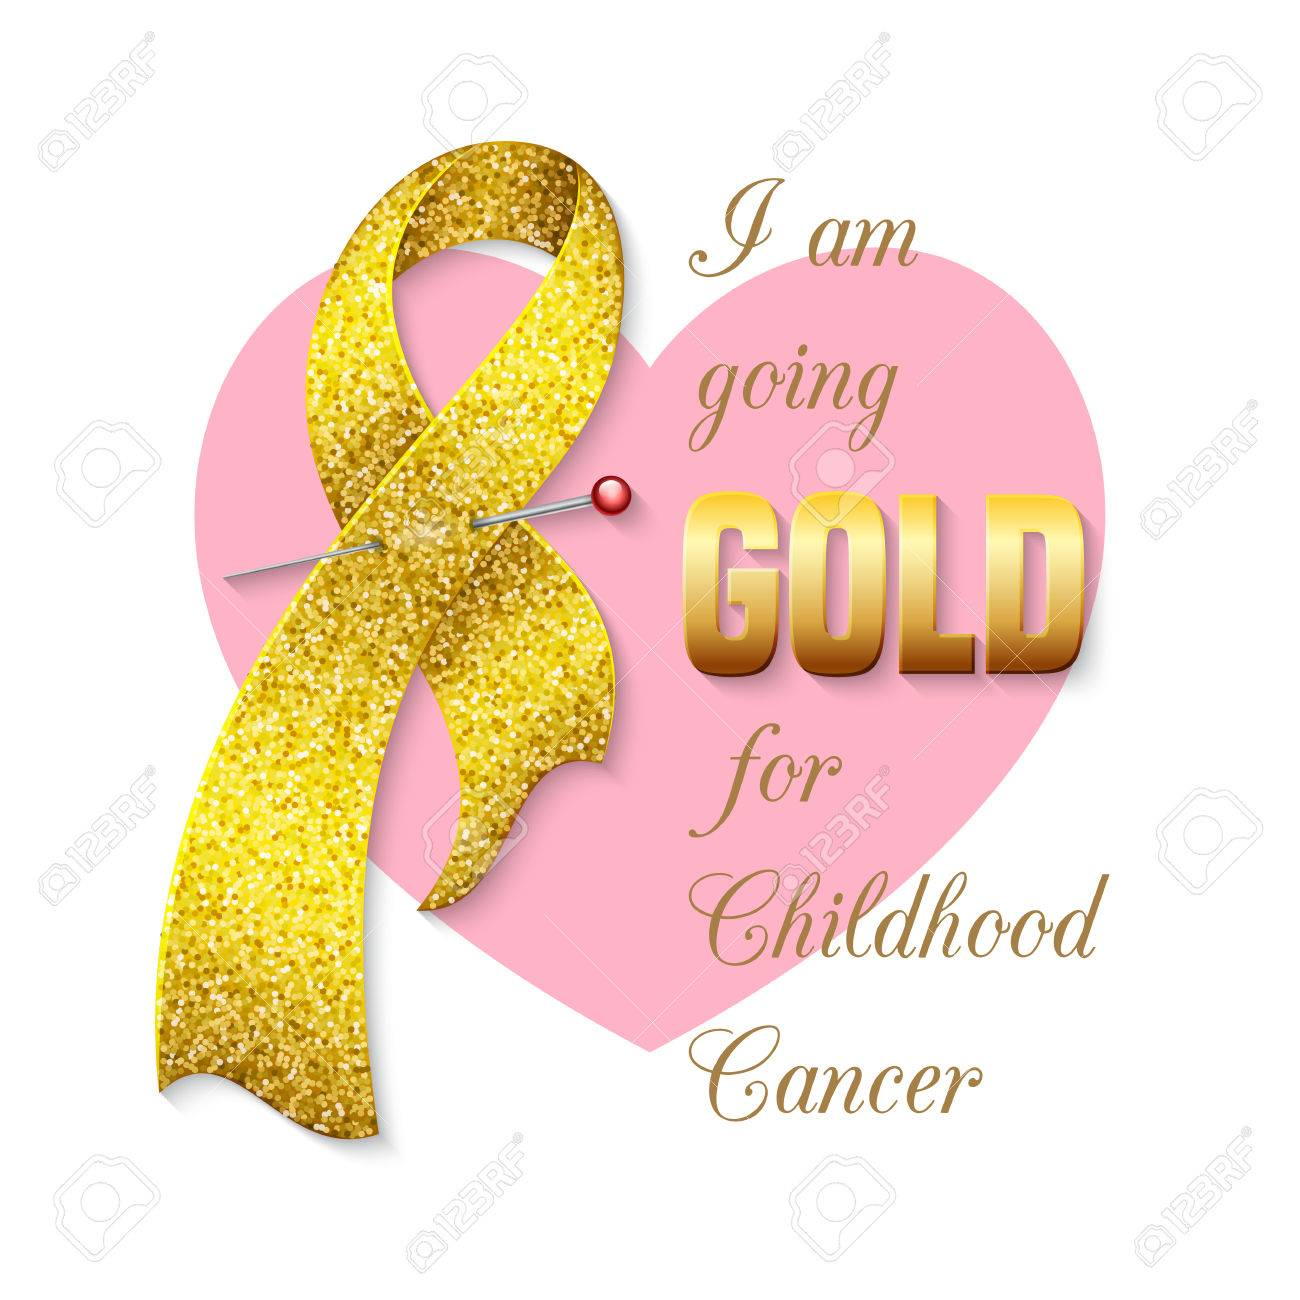 Childhood Cancer Awareness Ribbon. Poster Or Banner Template ...